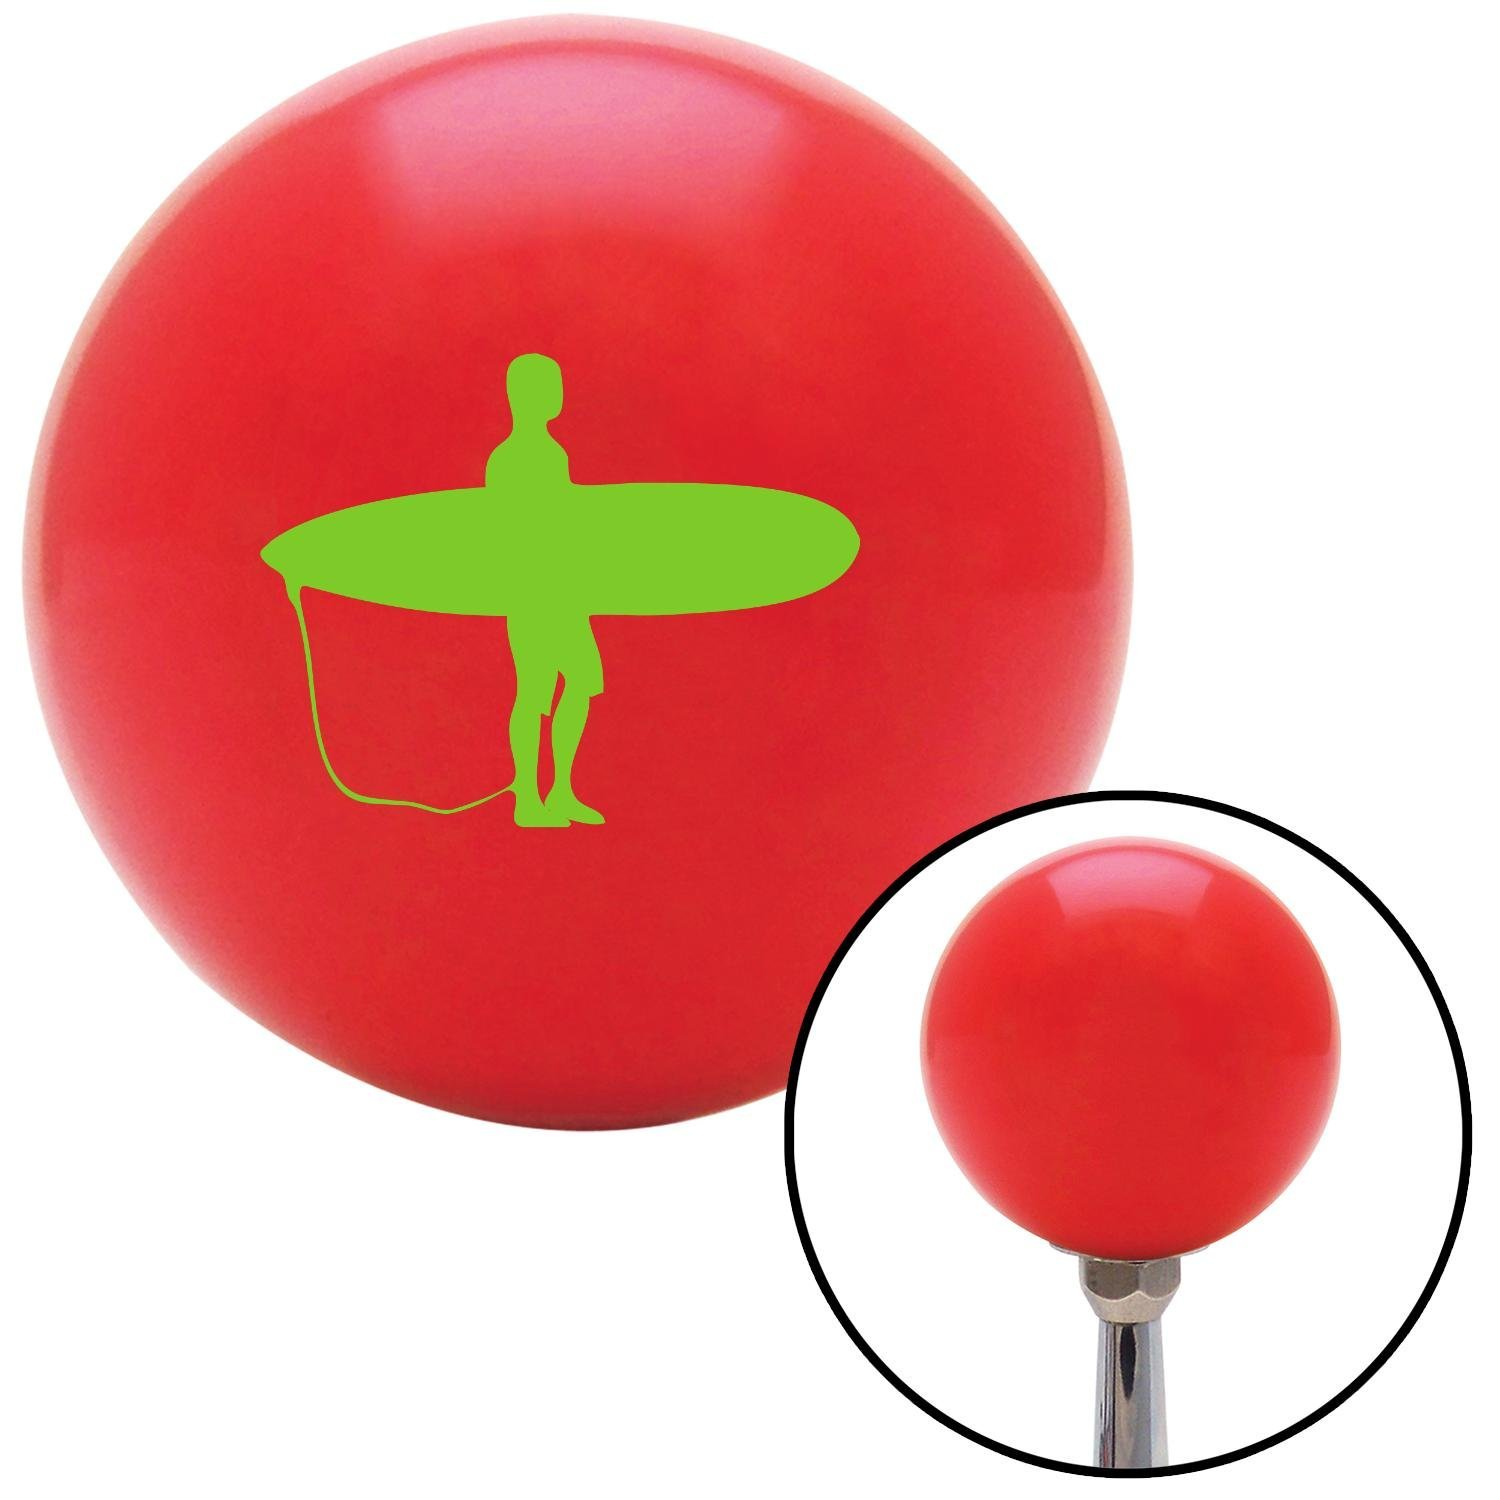 Green Surfboard Silhouette American Shifter 97544 Red Shift Knob with M16 x 1.5 Insert